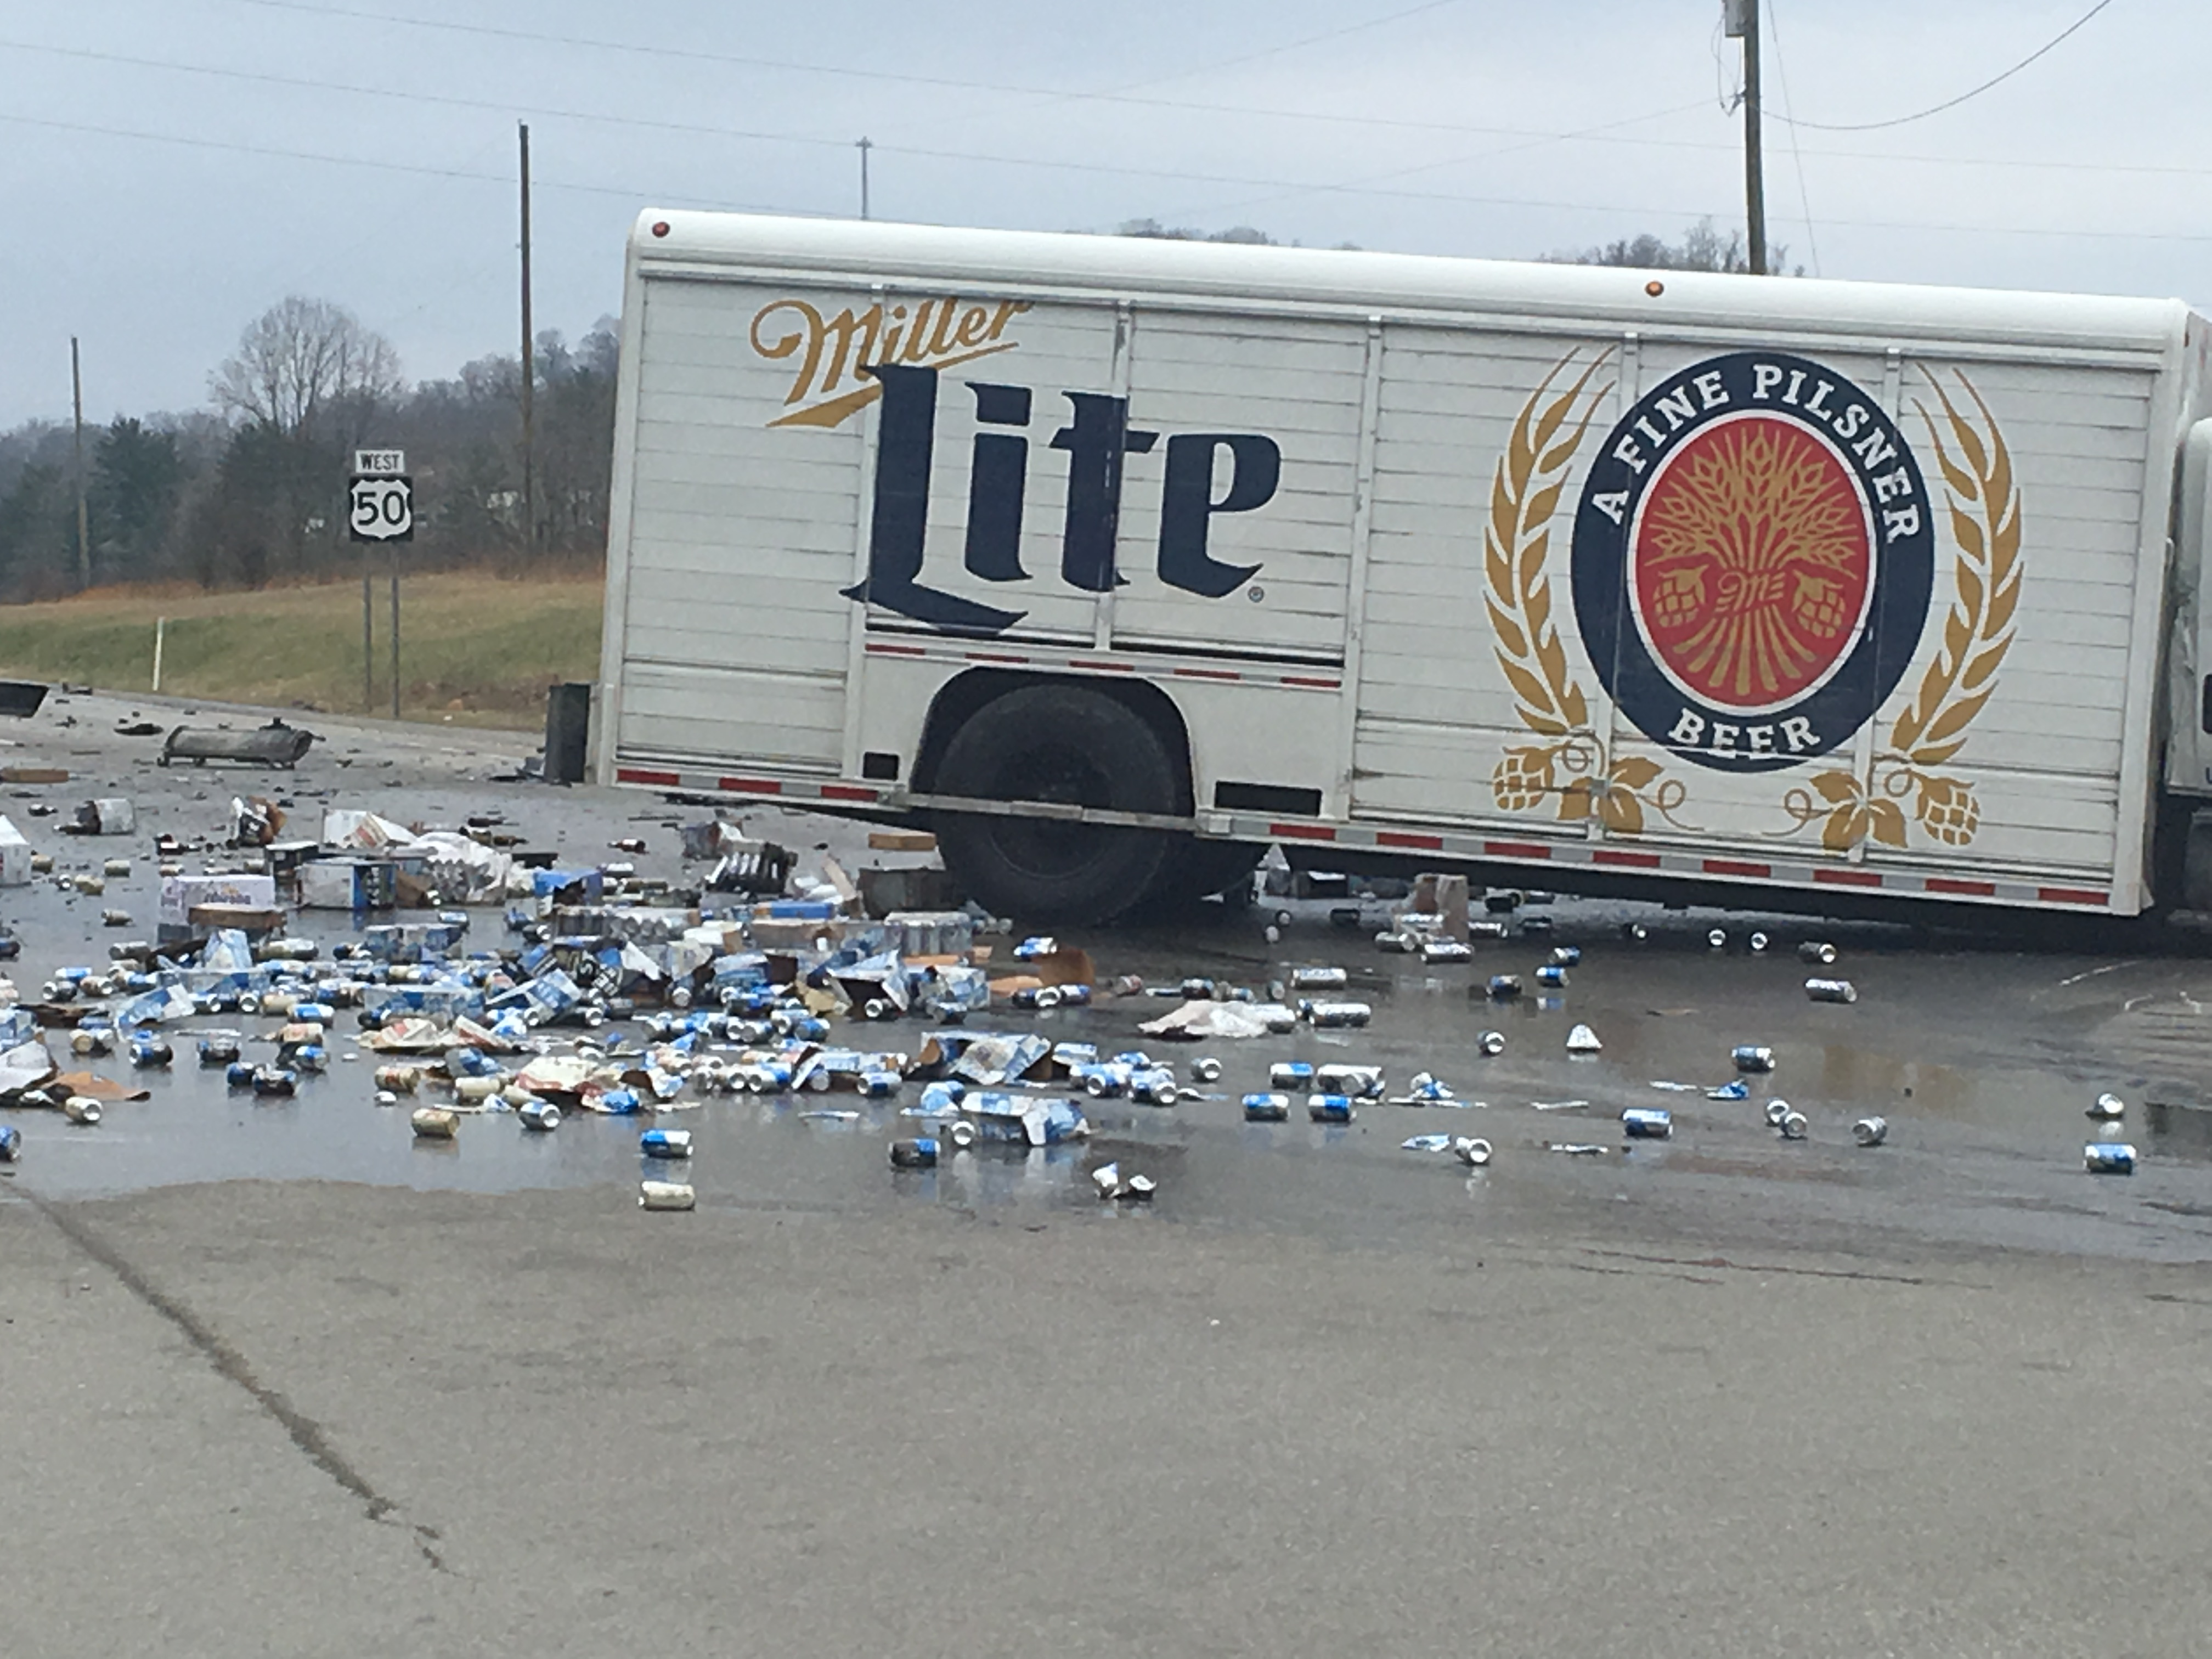 UPDATE: 2 people transported following accident with beer truck and